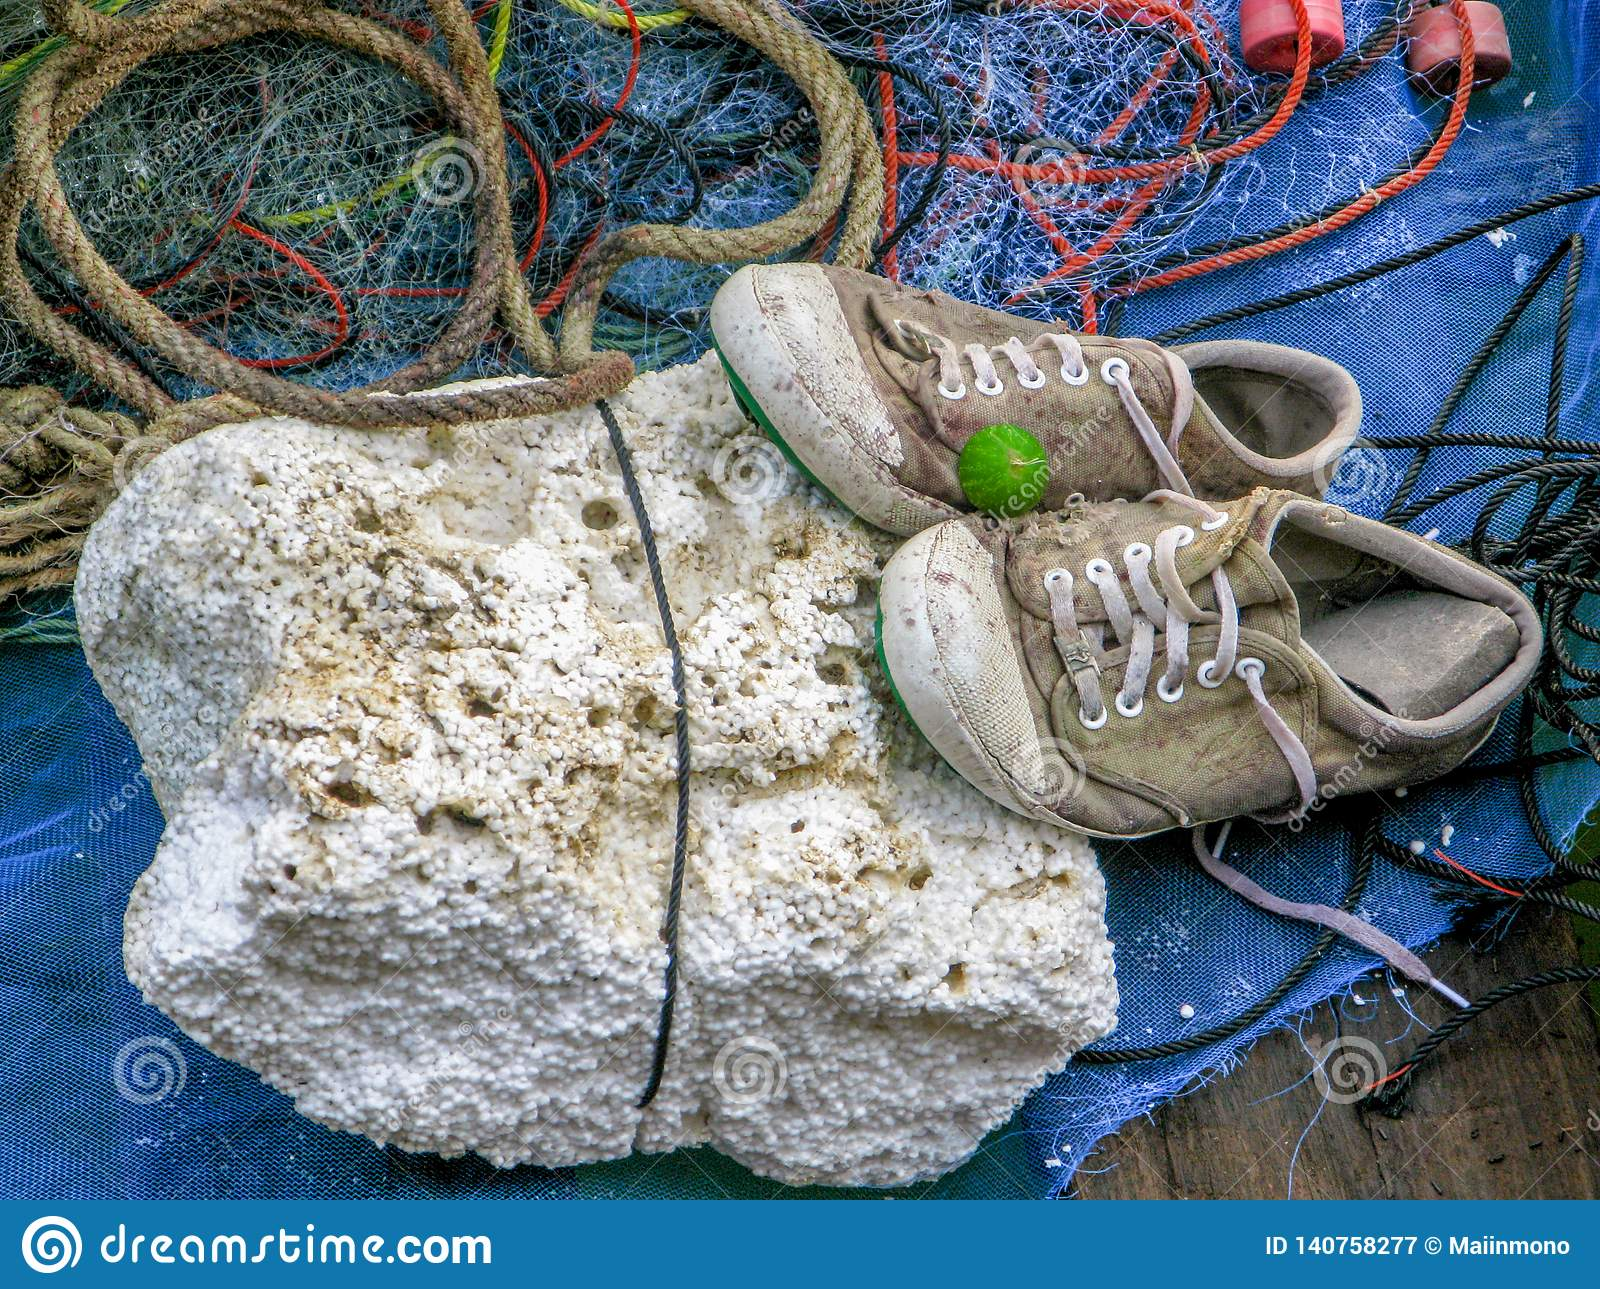 Pair of old sneakers on white foam with fishnet and red rope on the fishing boat.